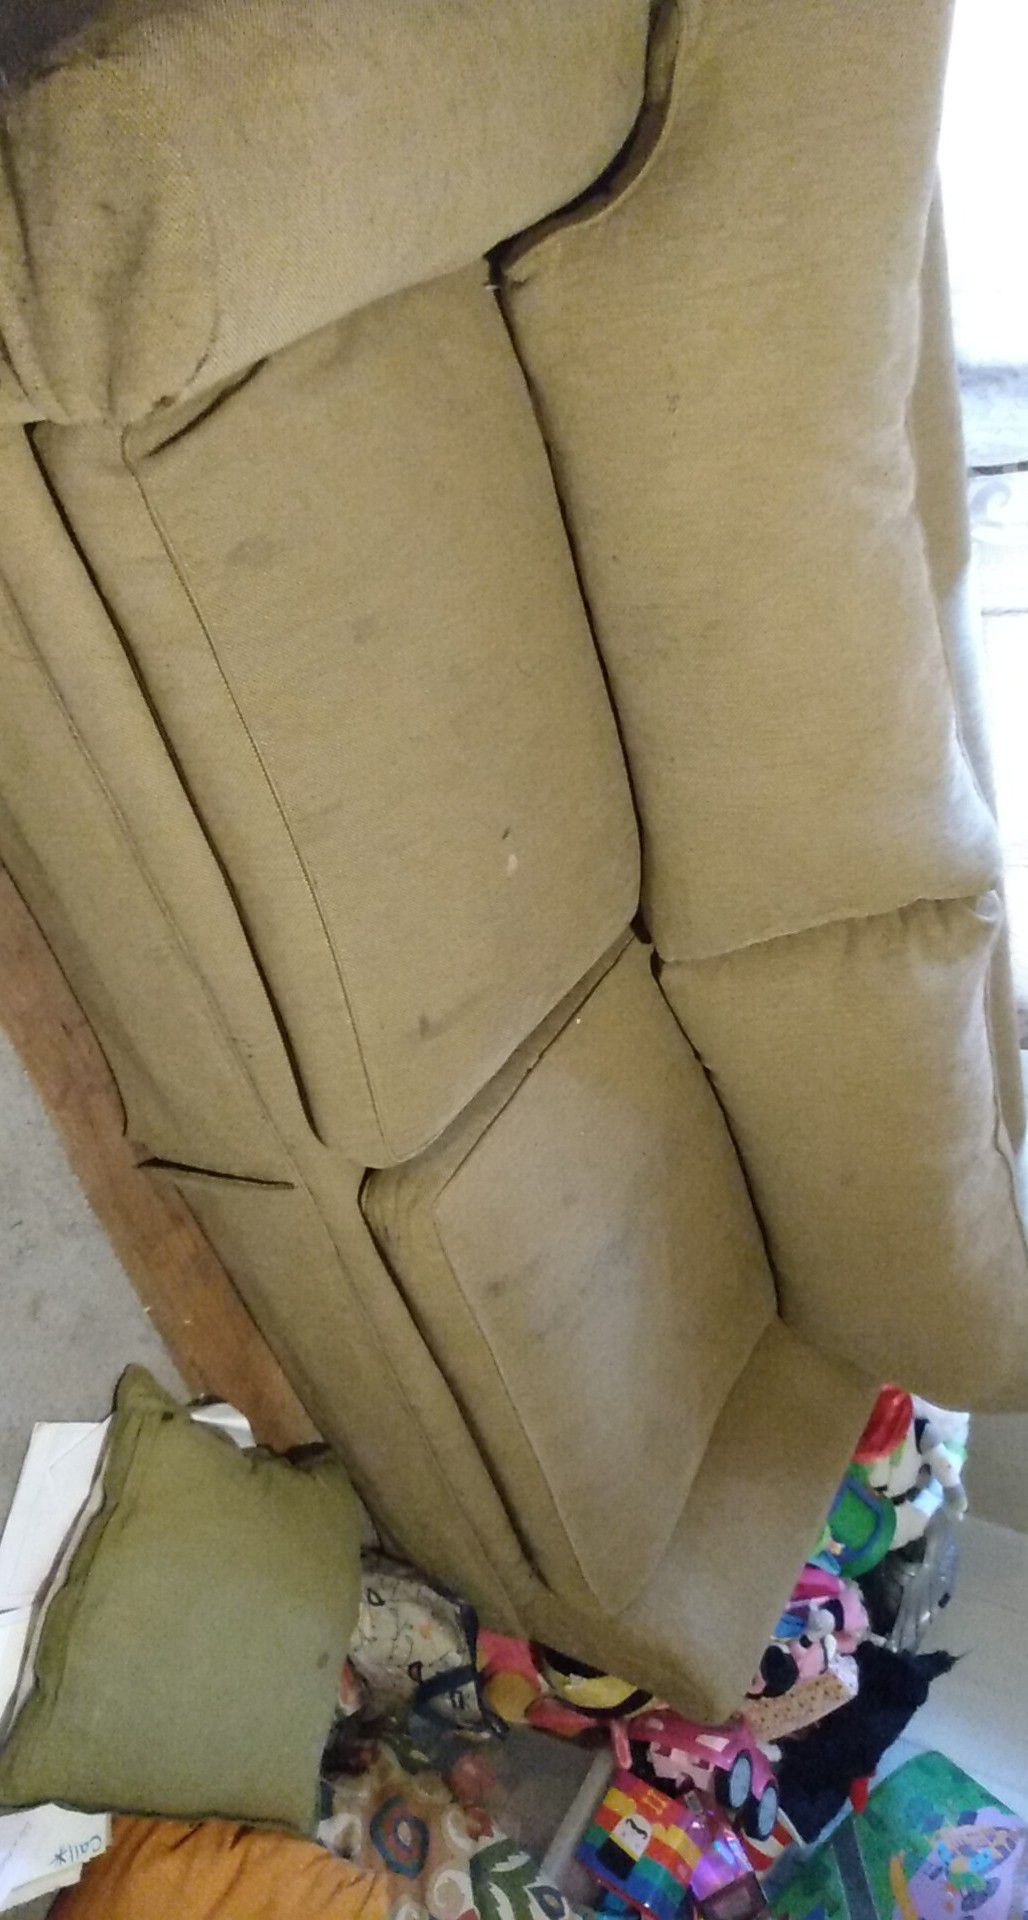 Pier 1 sofa with cushions floral print